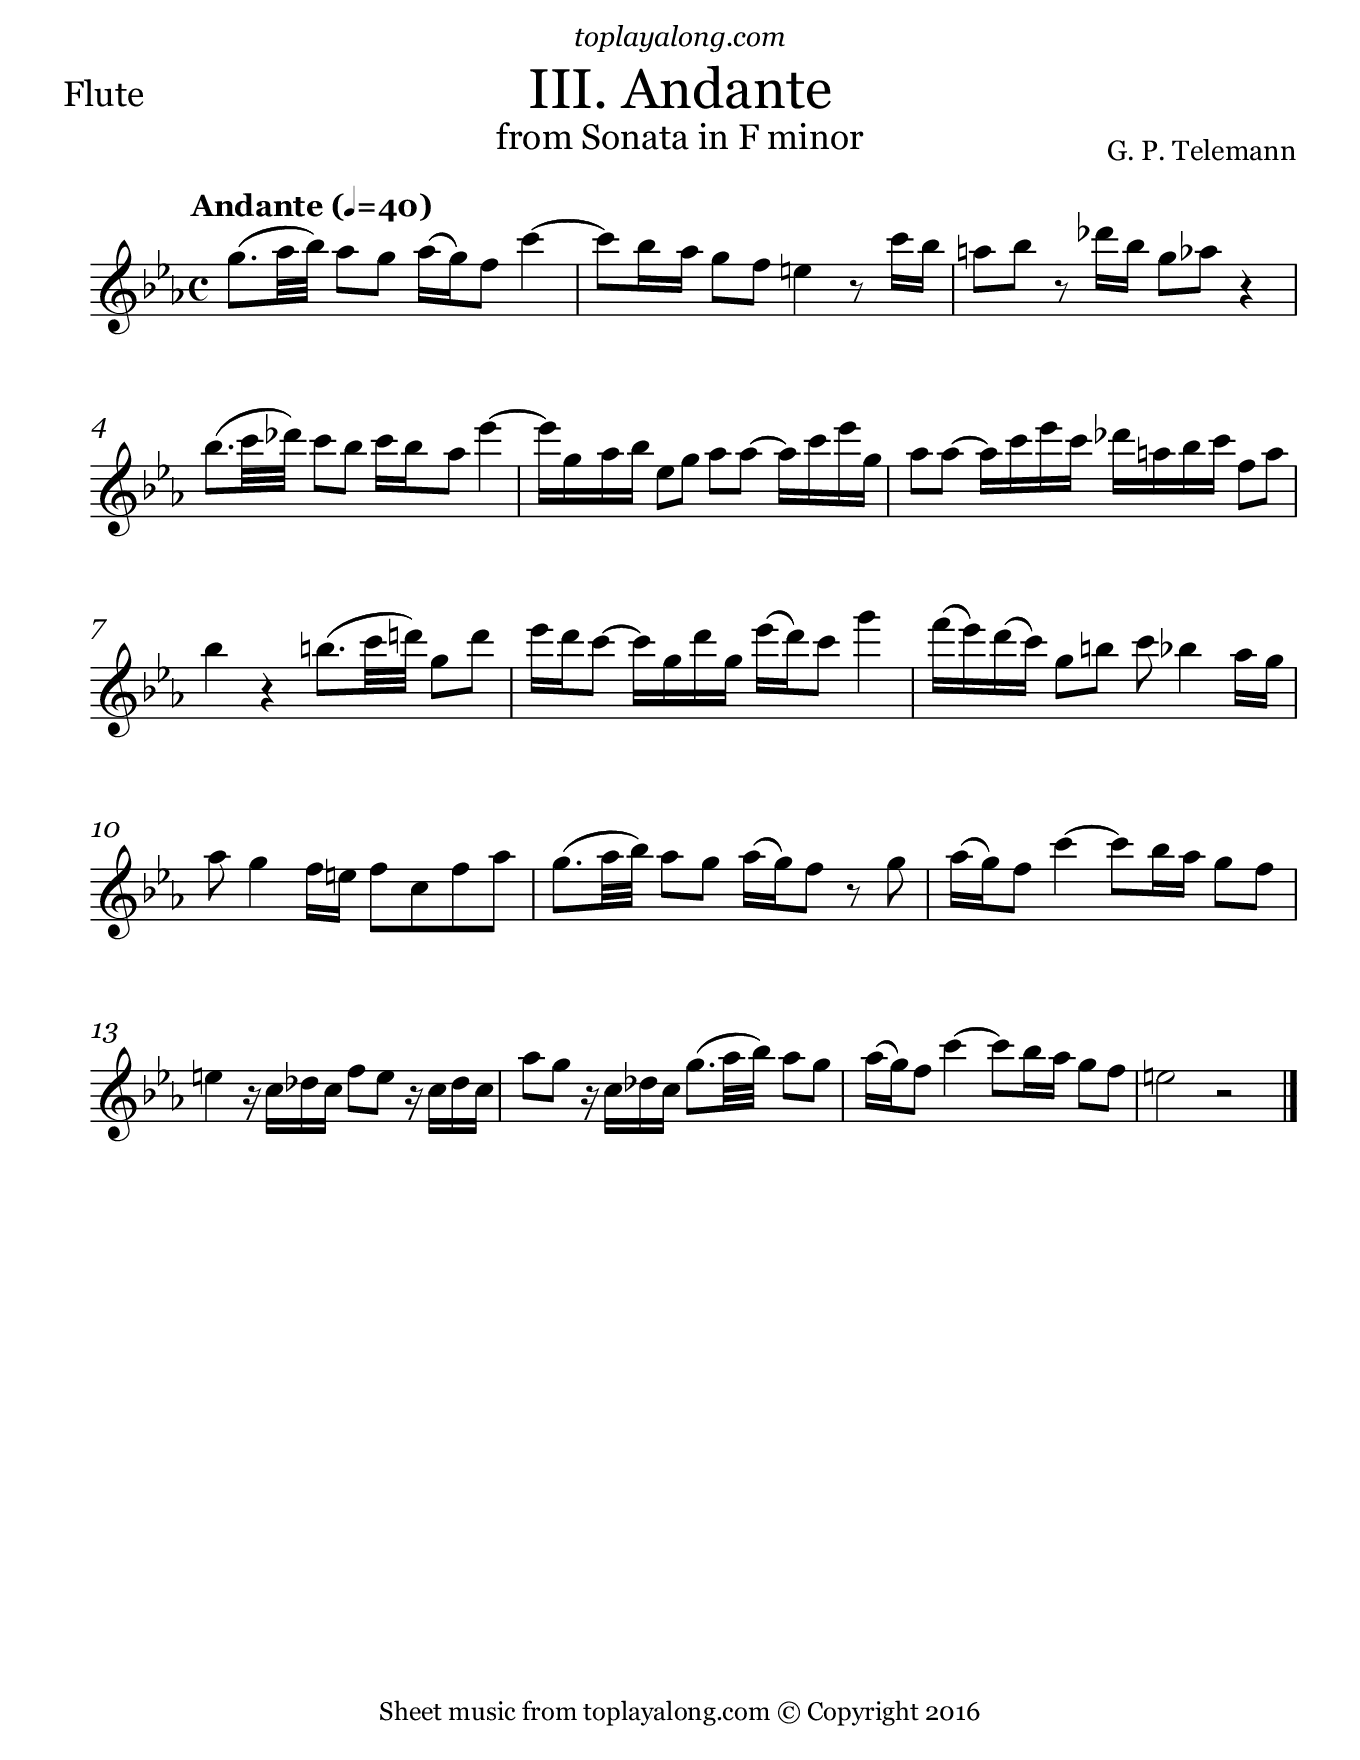 Sonata in F minor (III. Andante) by Telemann. Sheet music for Flute, page 1.